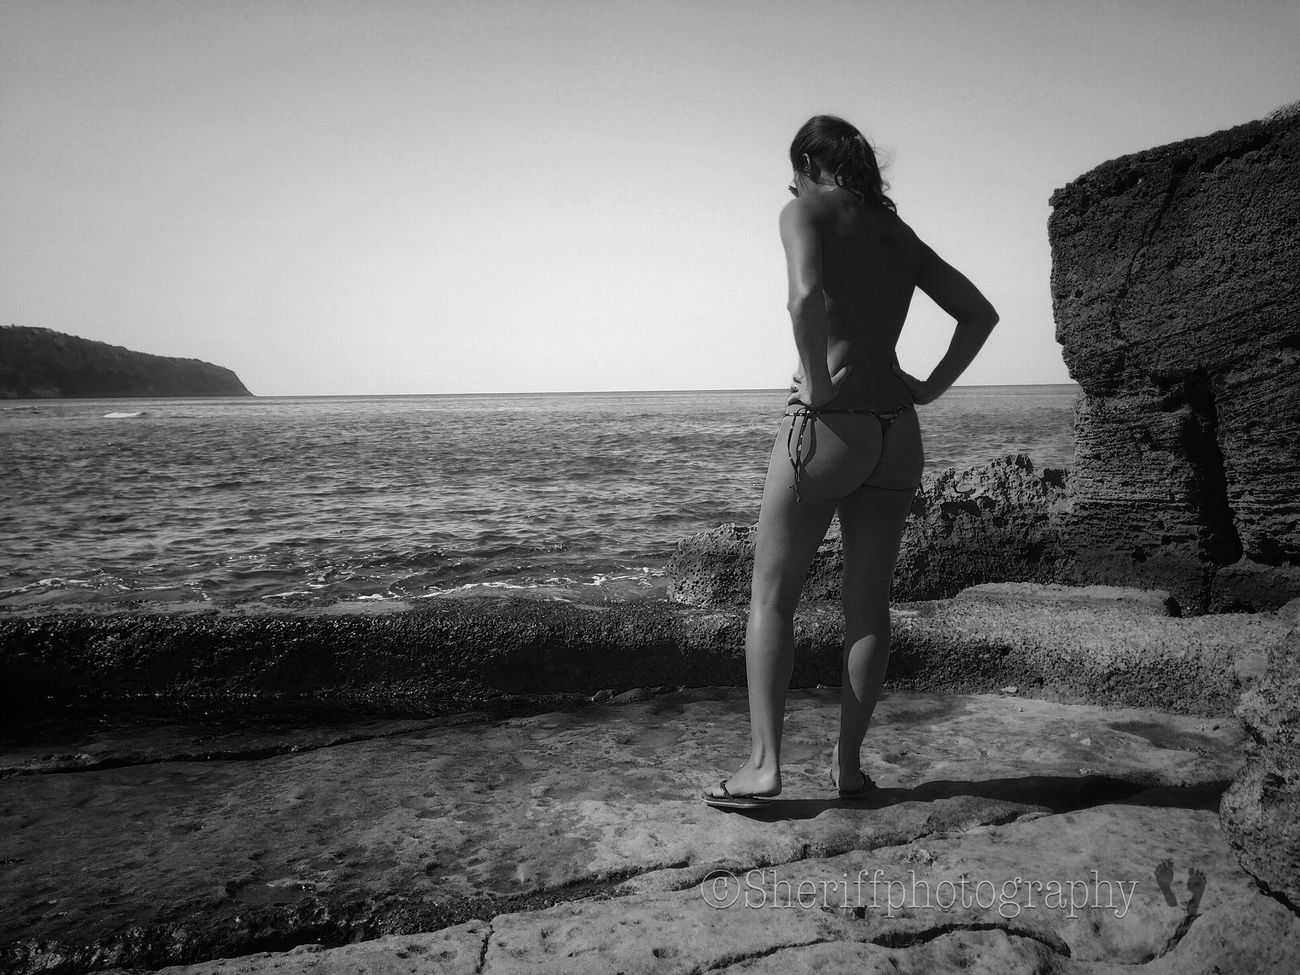 My Muse Femininity My Bw Obsession The Amazing Human Body My BW Obession My Unique Style BW Collection EyeEm Best Shots - Black + White Tadaa Community Beauty In Nature Beautiful Woman Life Is A Beach Beach Young Adult Nüde Art. Nature Lifestyles Erotic_art Beauty Scenics Shillouette Shilouette Women One Person One Woman Only